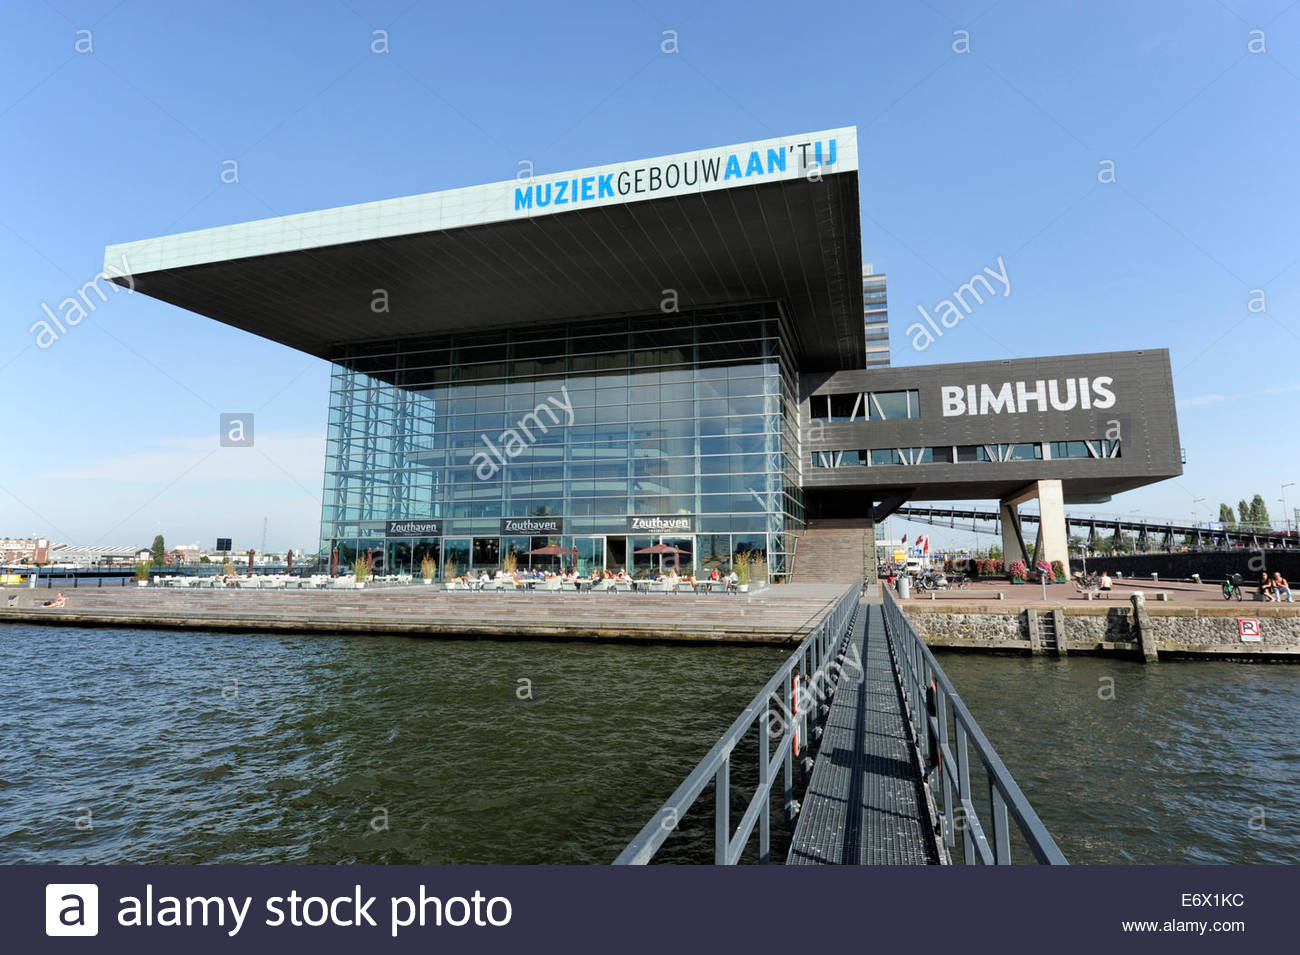 Modern architecture at the IJ lake, catwalk to a complex of buildings for music, Muziekgebouw aan het IJ and Bimhuis - Stock Image